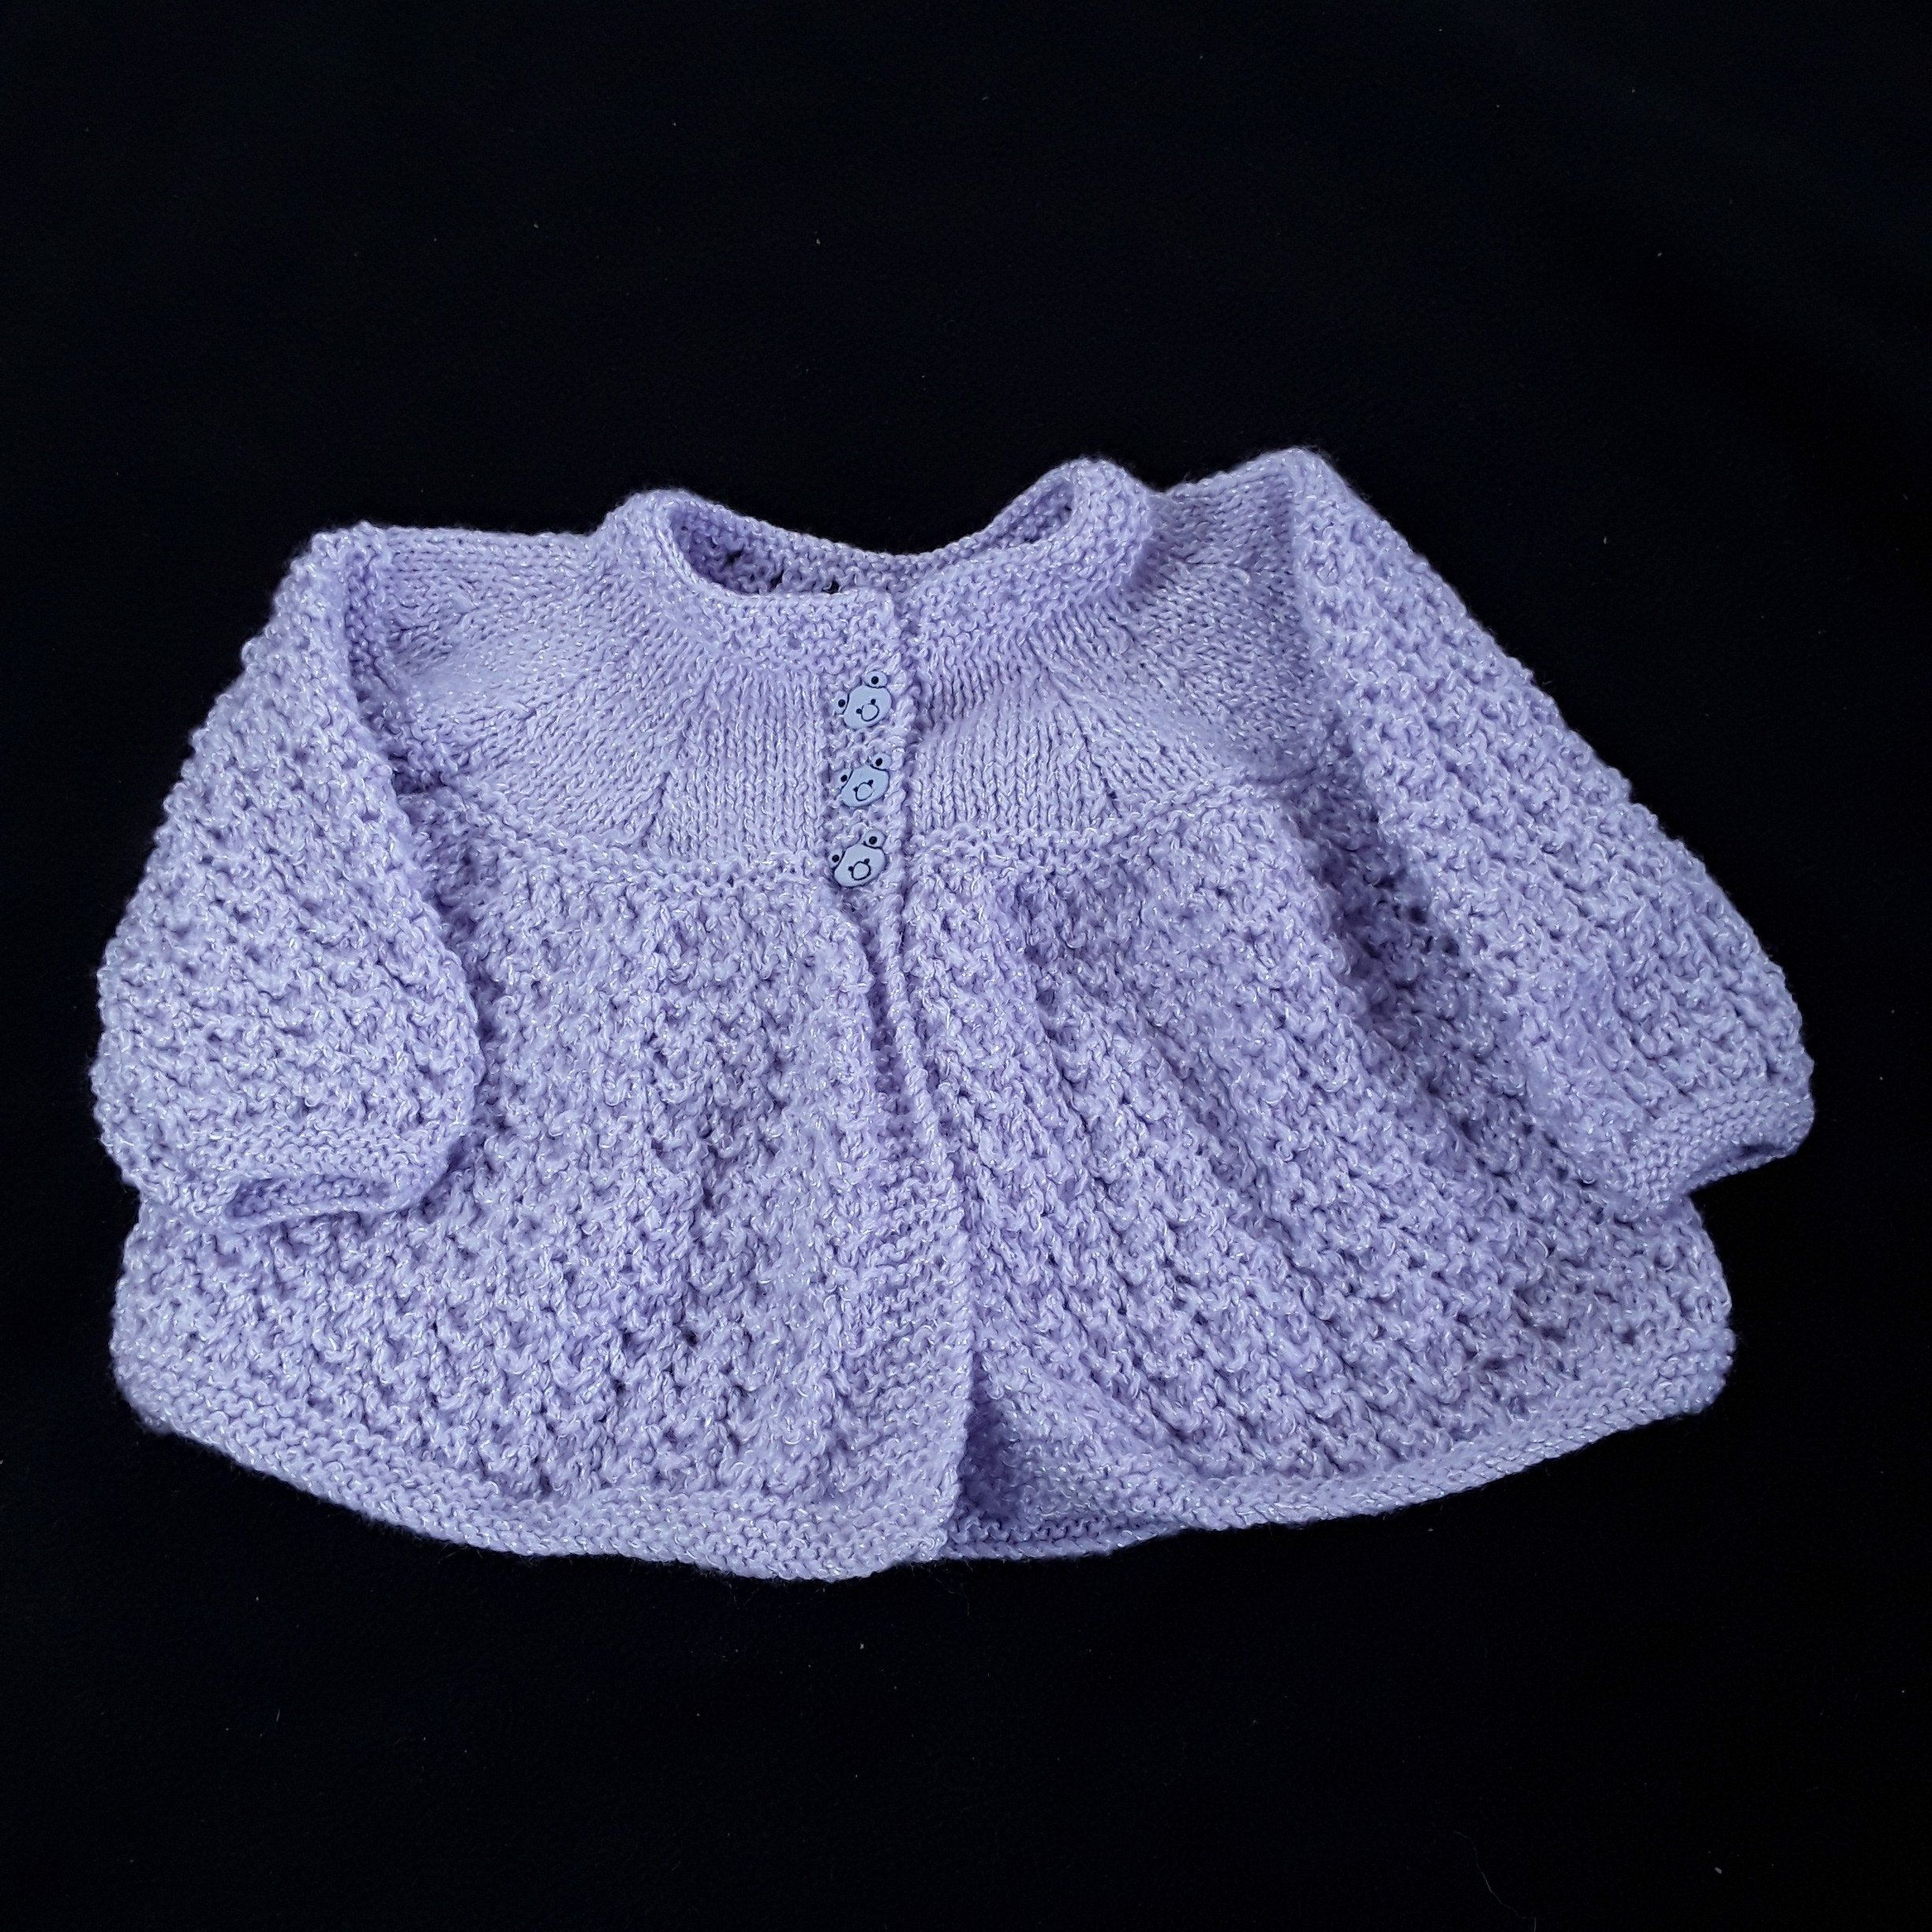 dc7df47e0 Sparkly lilac hand knitted baby cardigan 6 - 12 months matinee coat baby  clothes knitwear